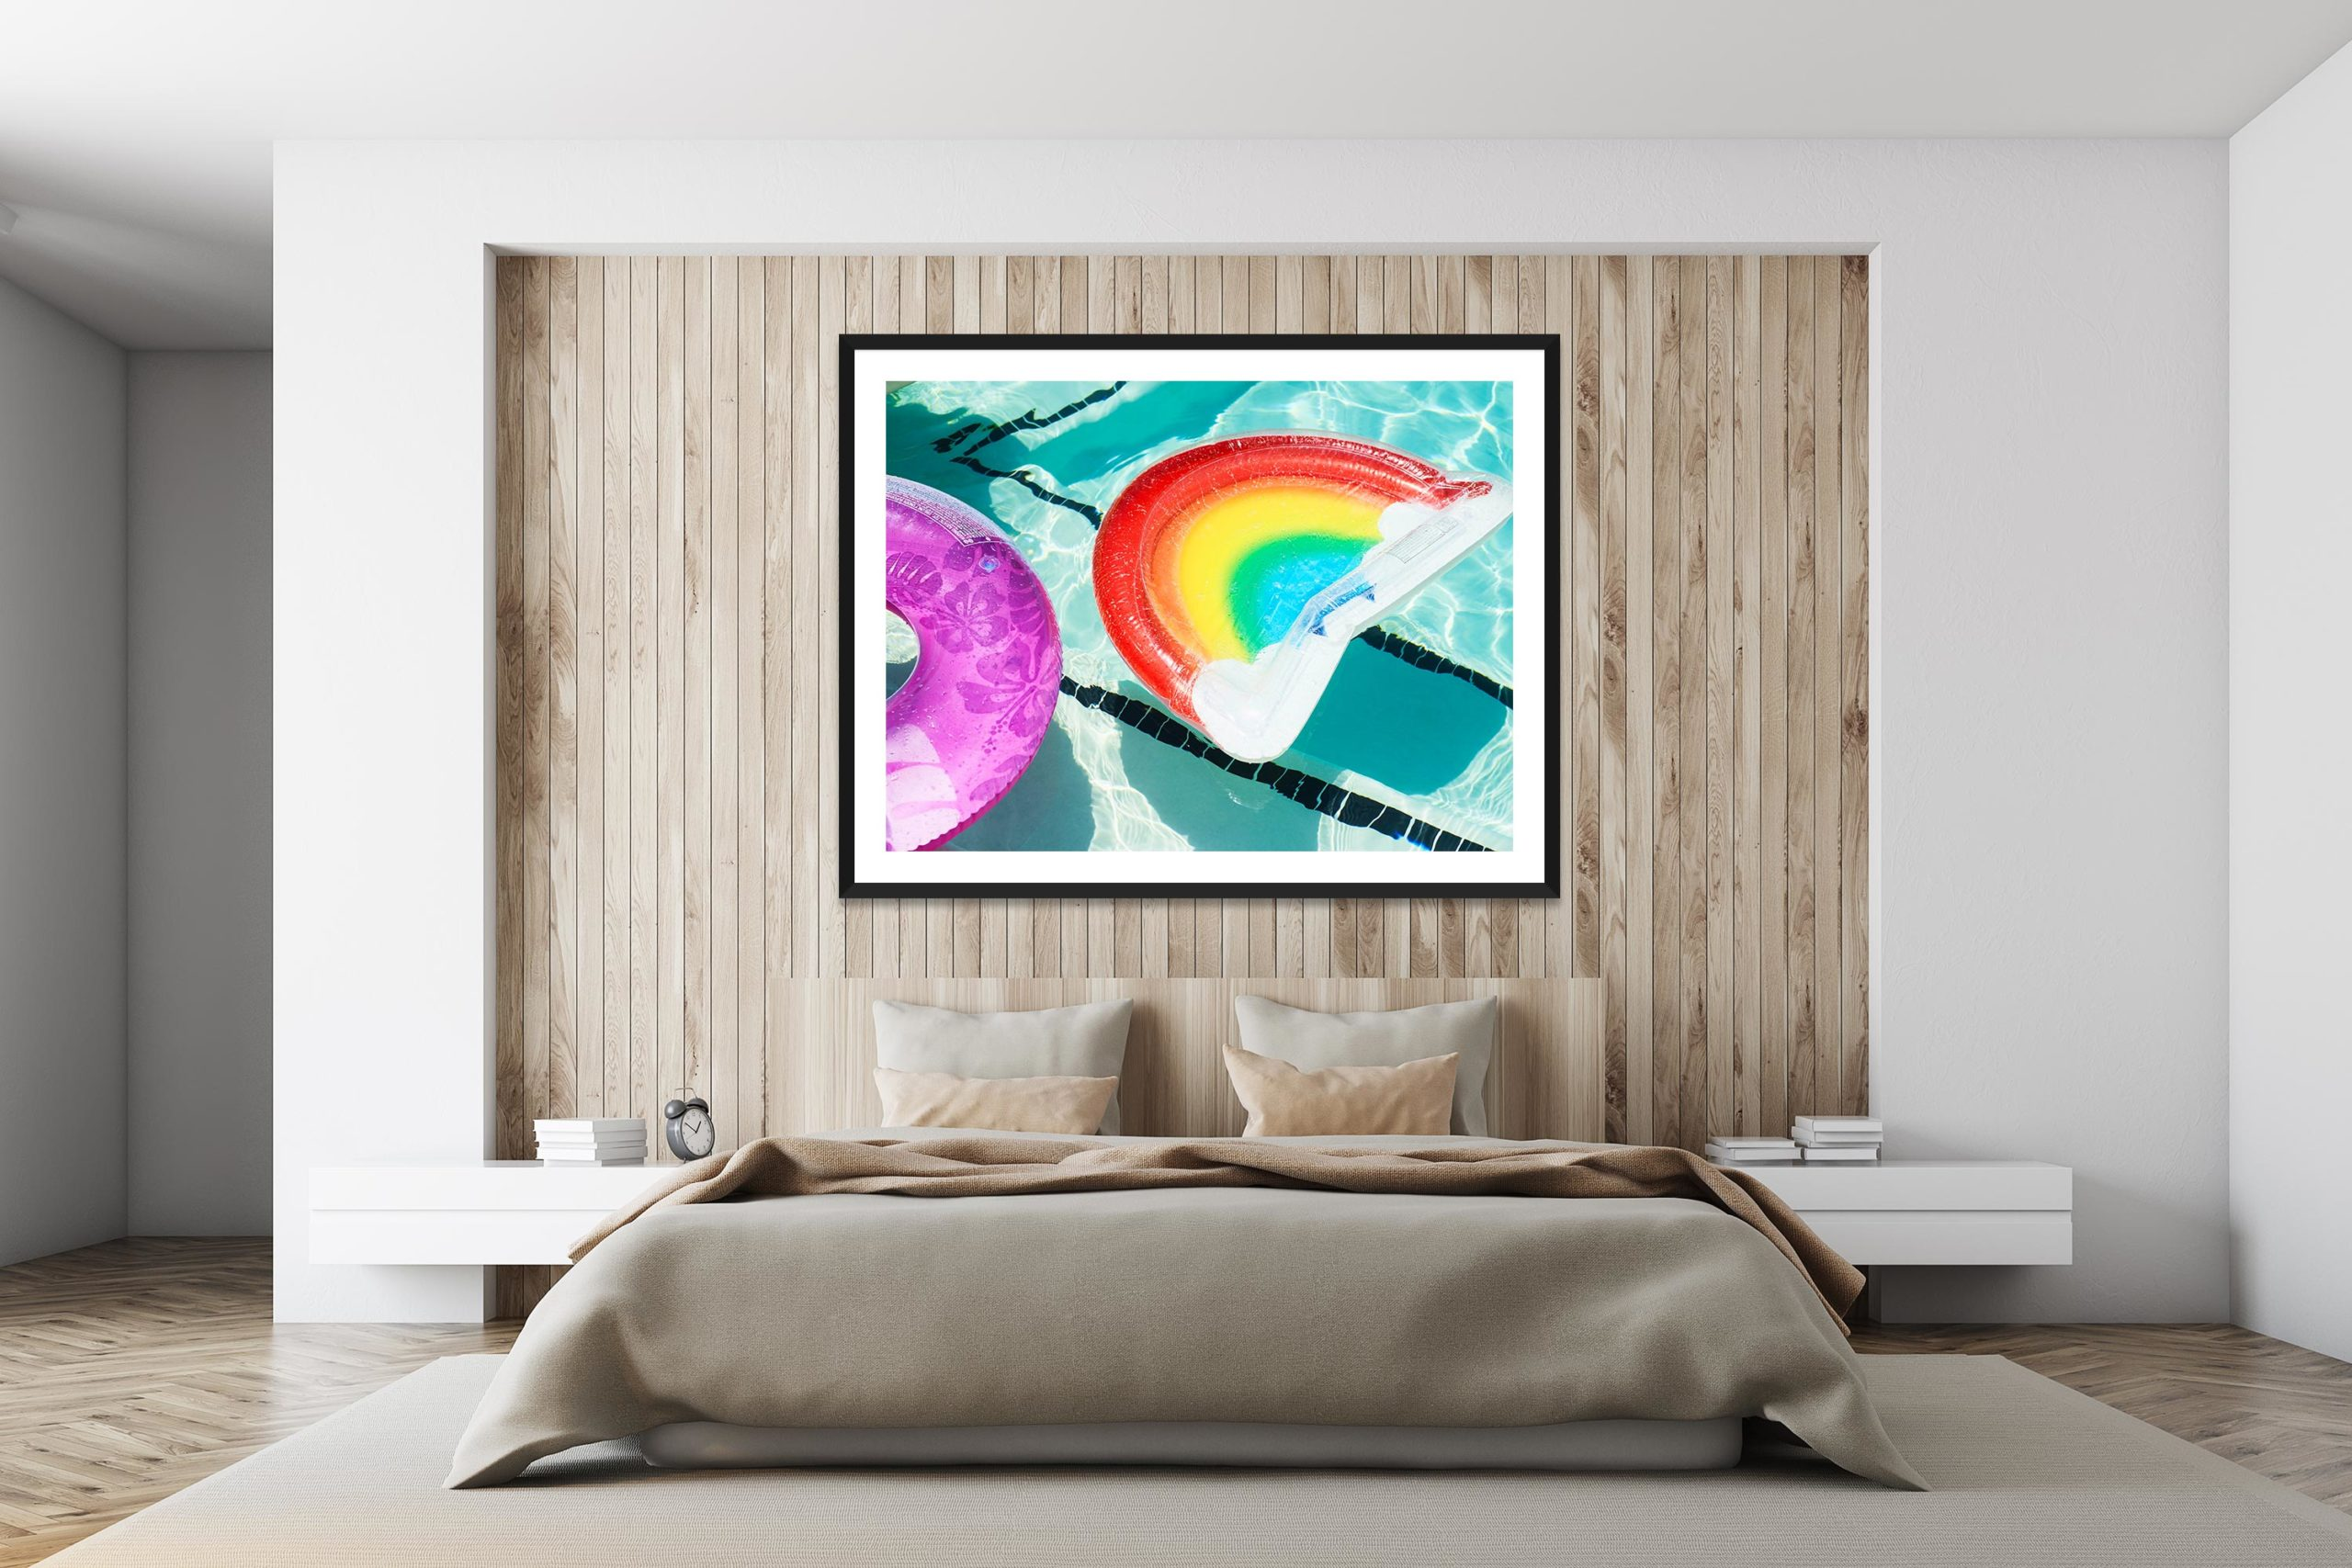 Poolside Daybed - Black Frame - I Heart Palm Springs Collection - Fine Art Photography by Toby Dixon